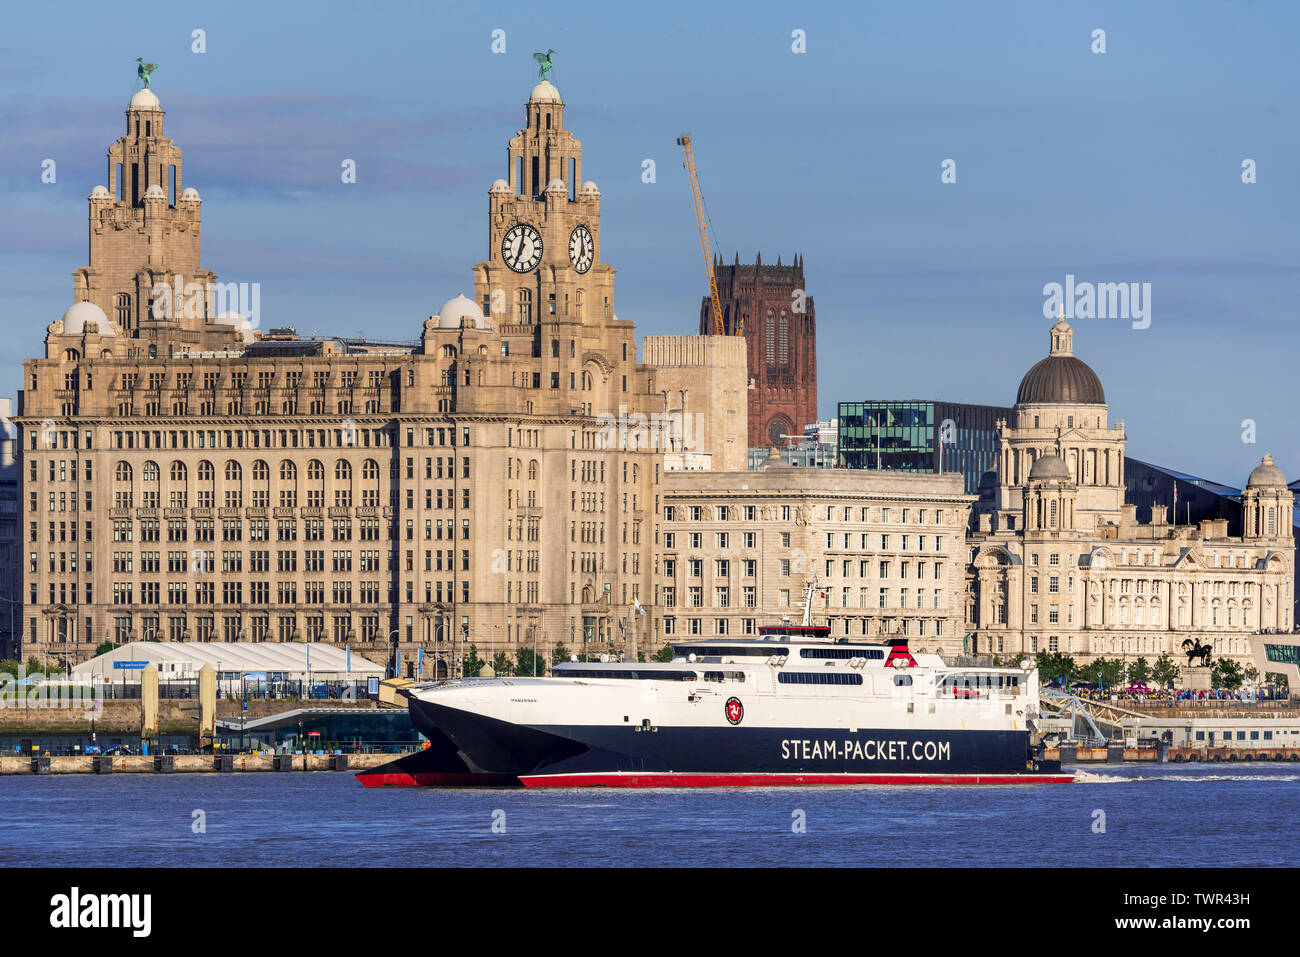 Isle of Man Ro Ro car ferry catamaran the Manannan in the river Mersey at Liverpool pierhead. The Royal Liver building. Stock Photo